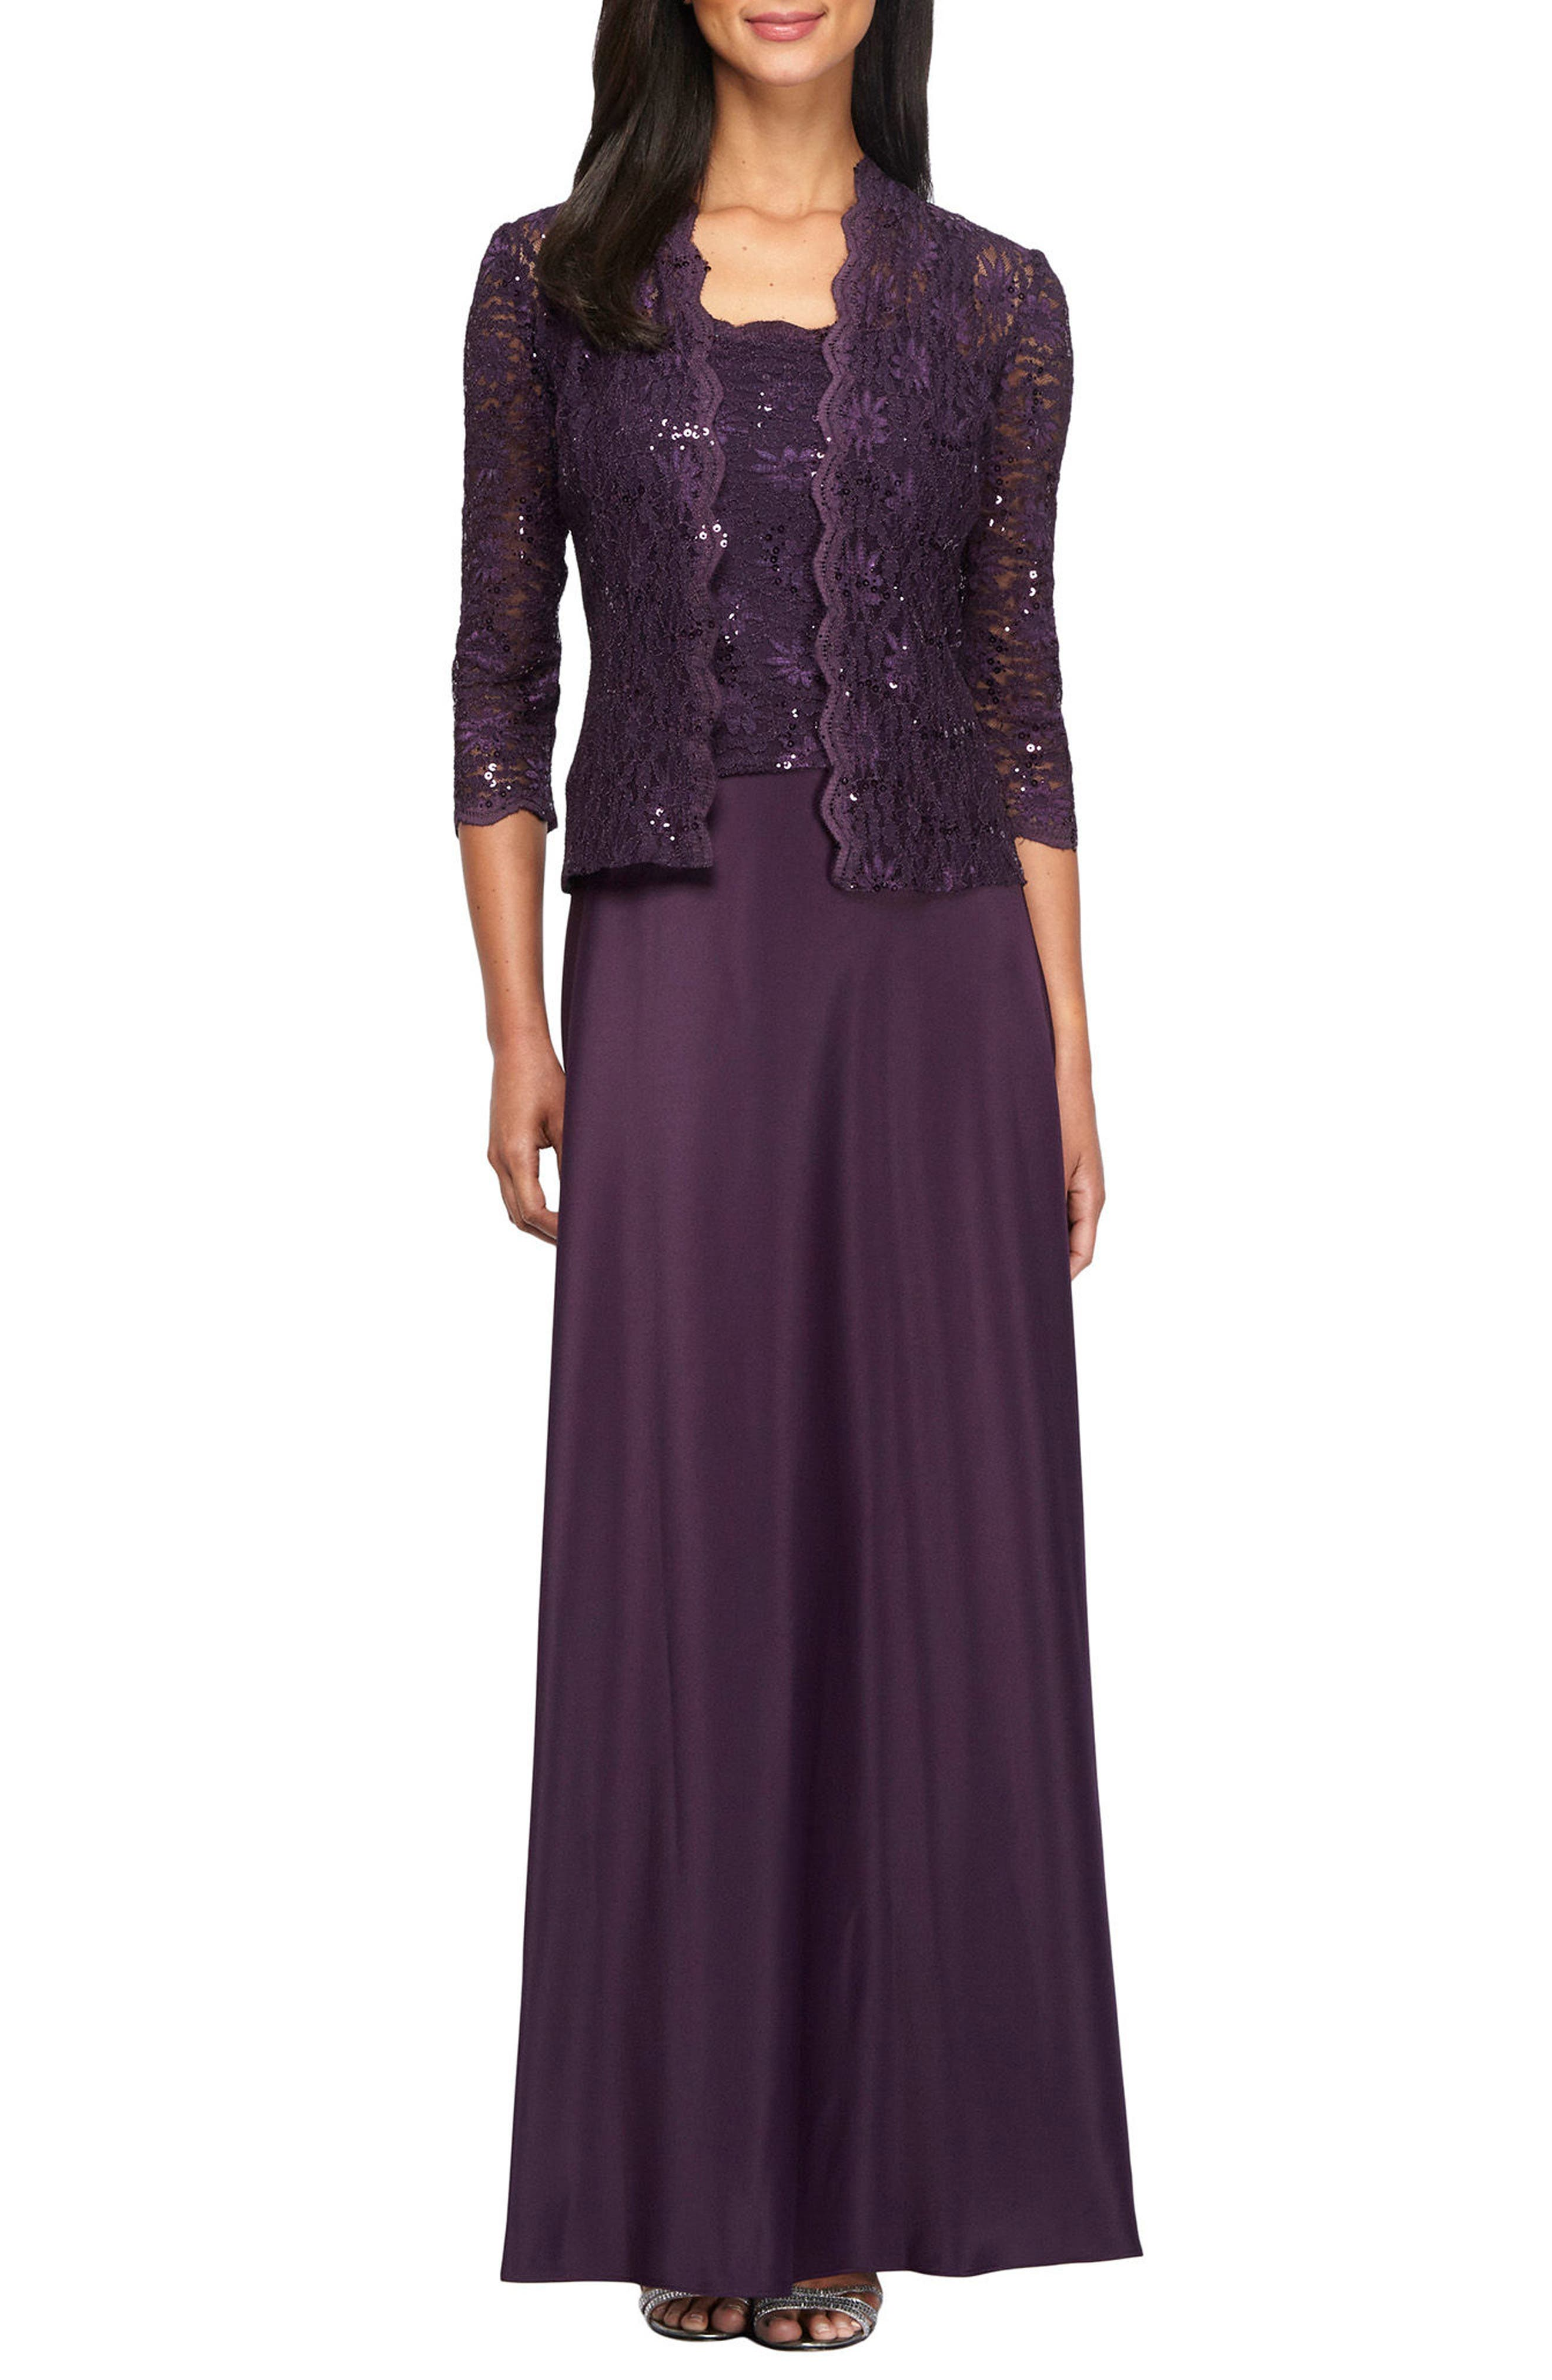 Alternate Image 1 Selected - Alex Evenings Sequin Lace & Satin Gown with Jacket (Regular & Petite)